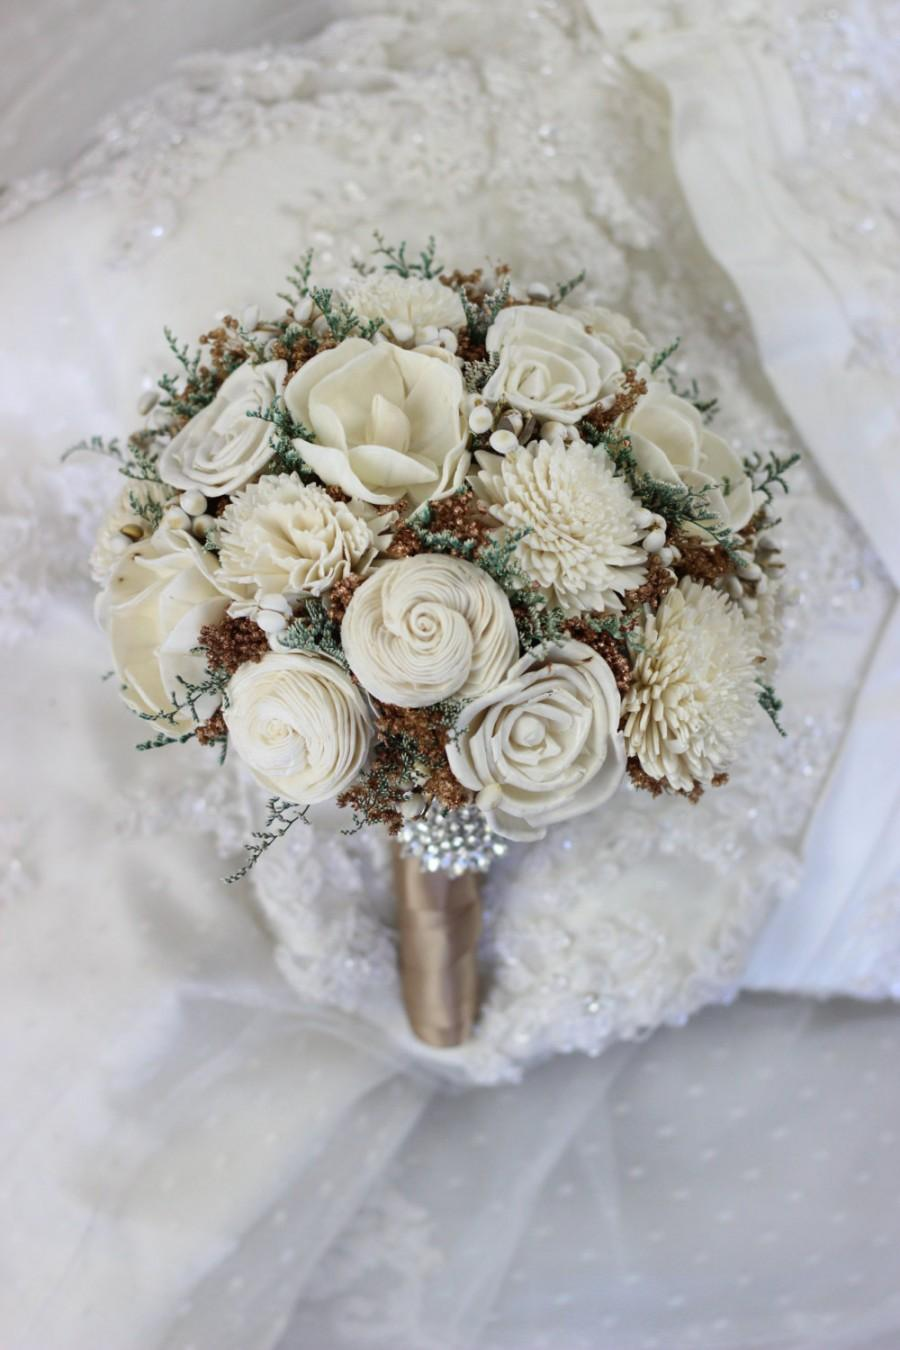 Wedding - Wedding Bouquet, Vintage Bridal Bouquet, Romantic bouquet, Alternative bouquet, Sola flower bouquet, keep sake bouquet